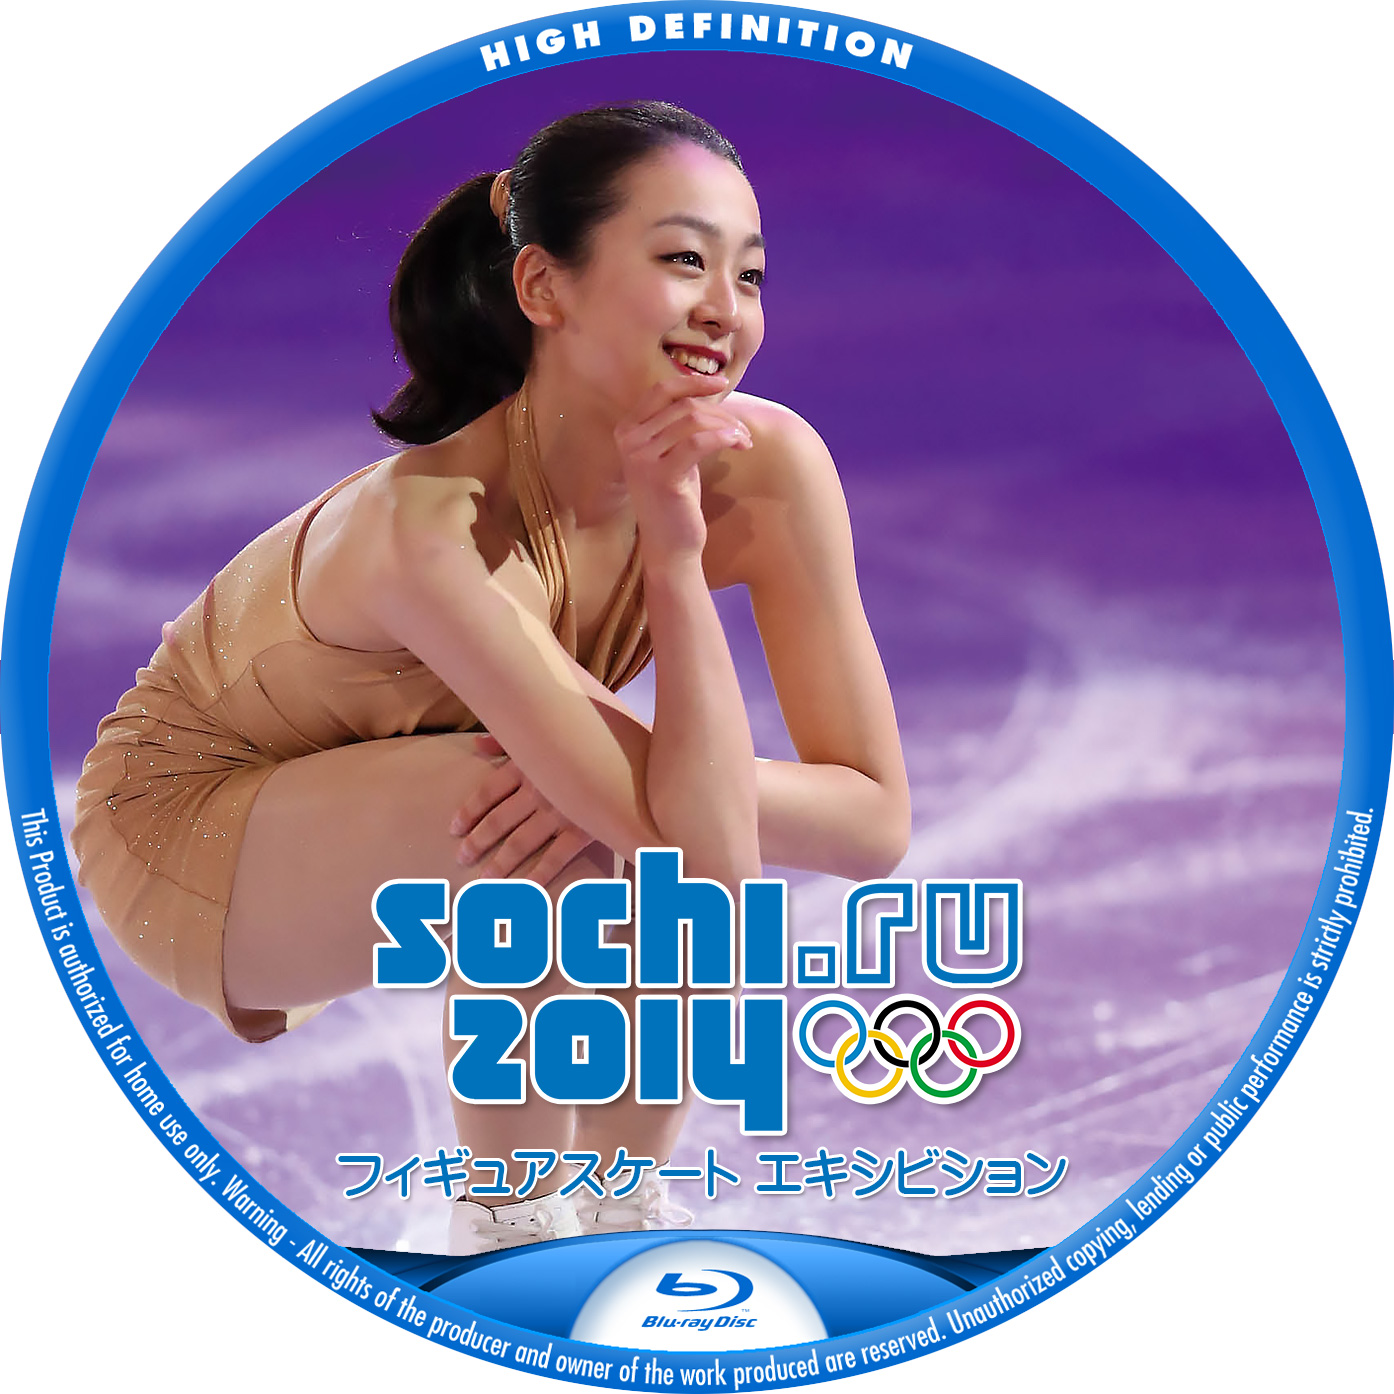 Sochi_Figure_Exhibition-BD1